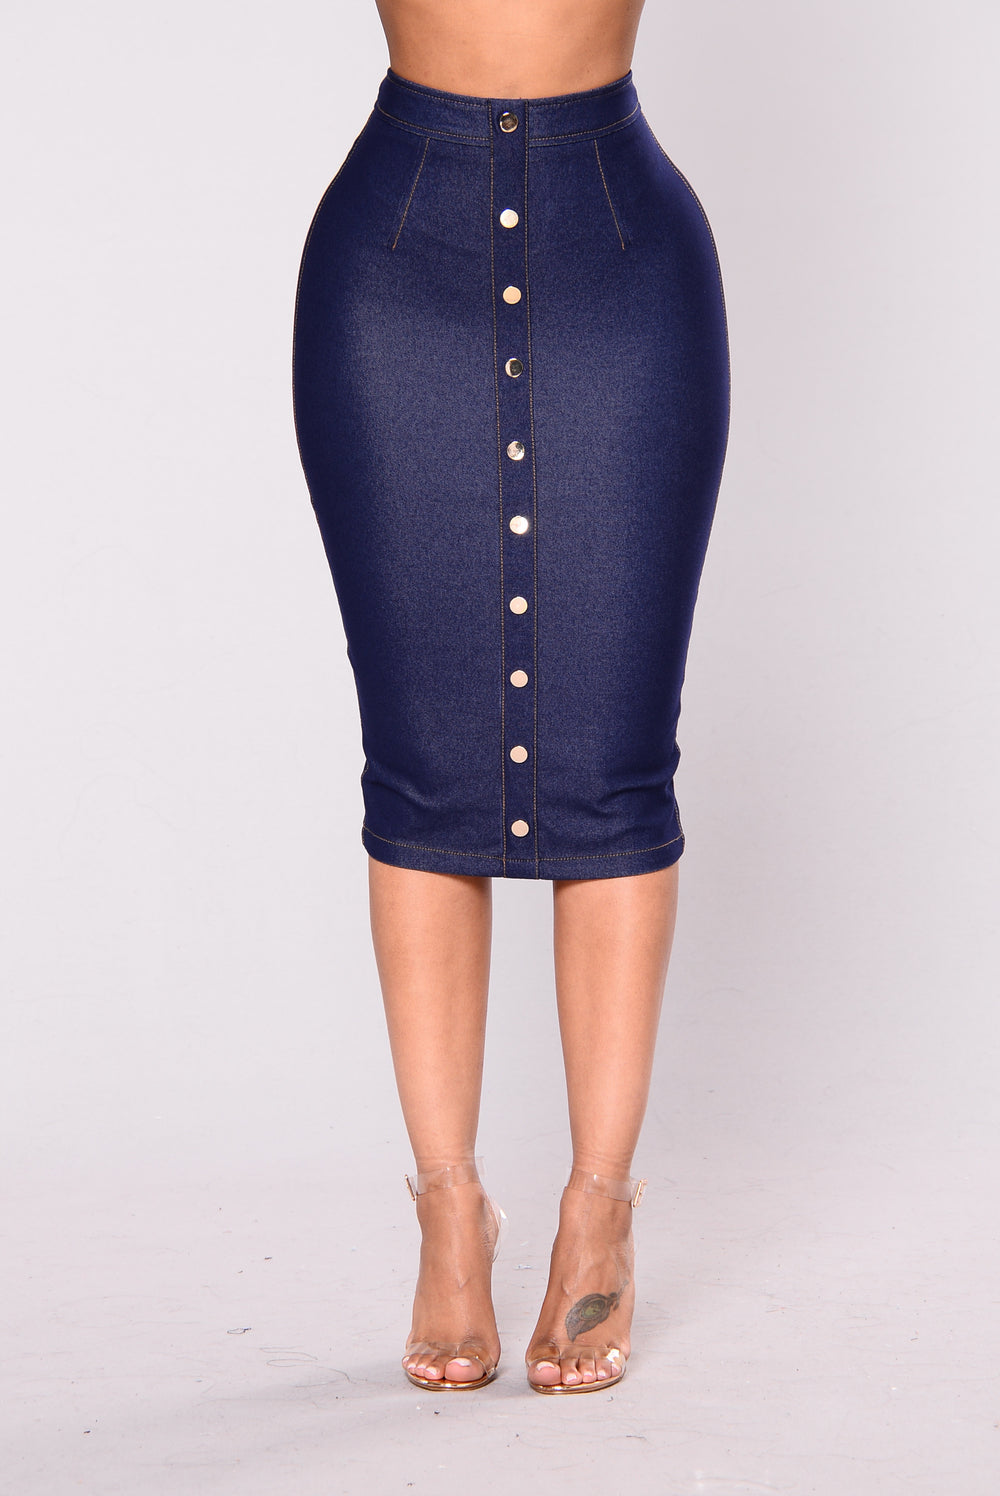 Jeanius Skirt - Indigo